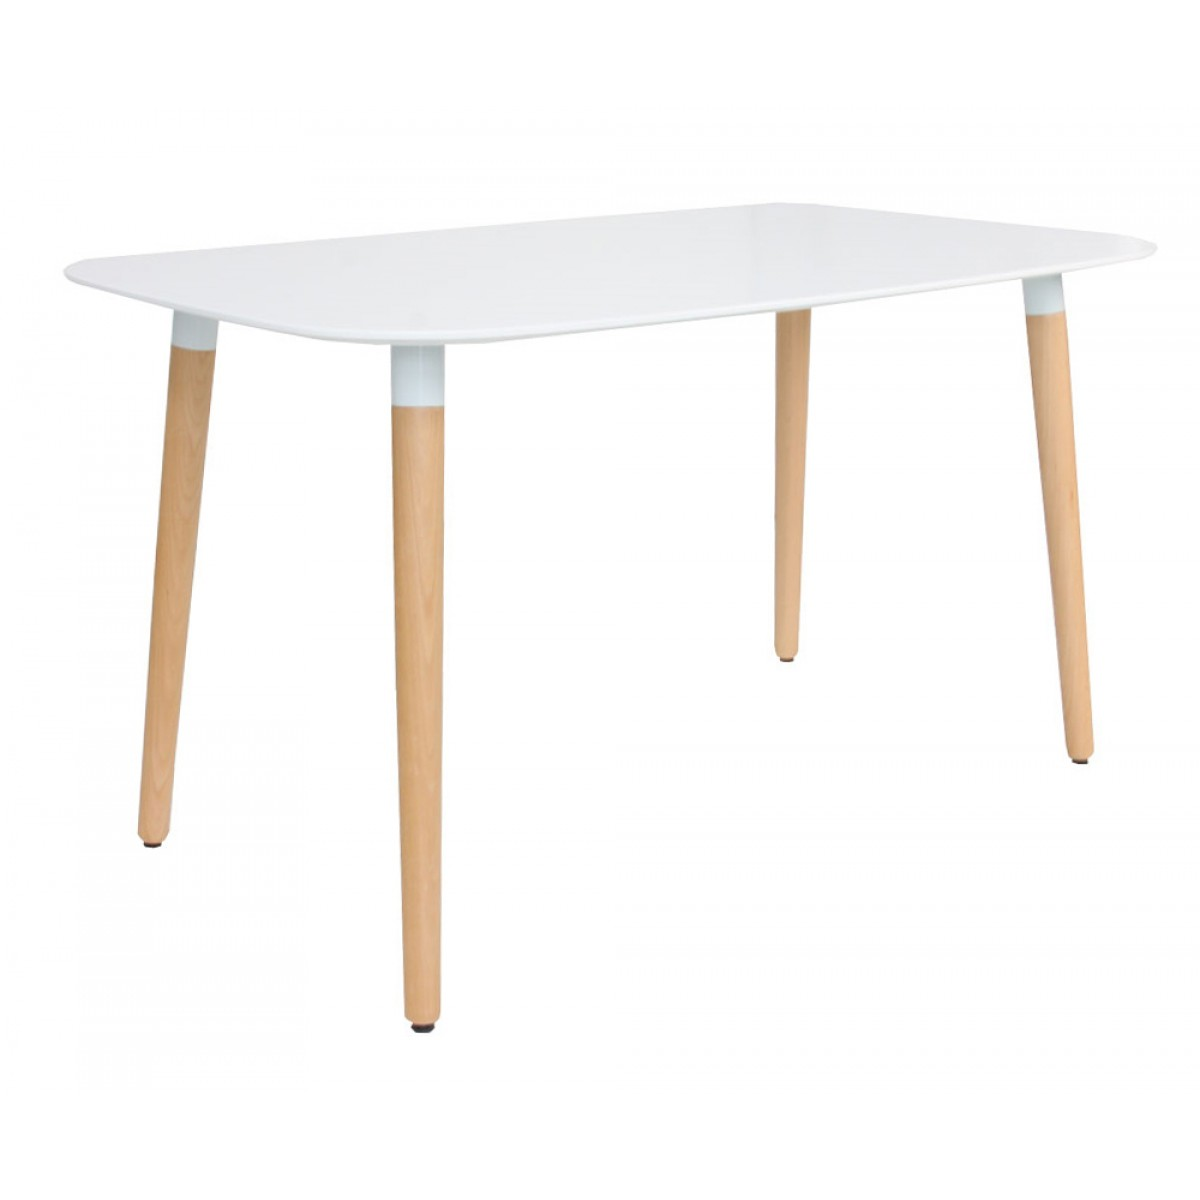 Eames style dsw white rectangular dining table for Table eames dsw